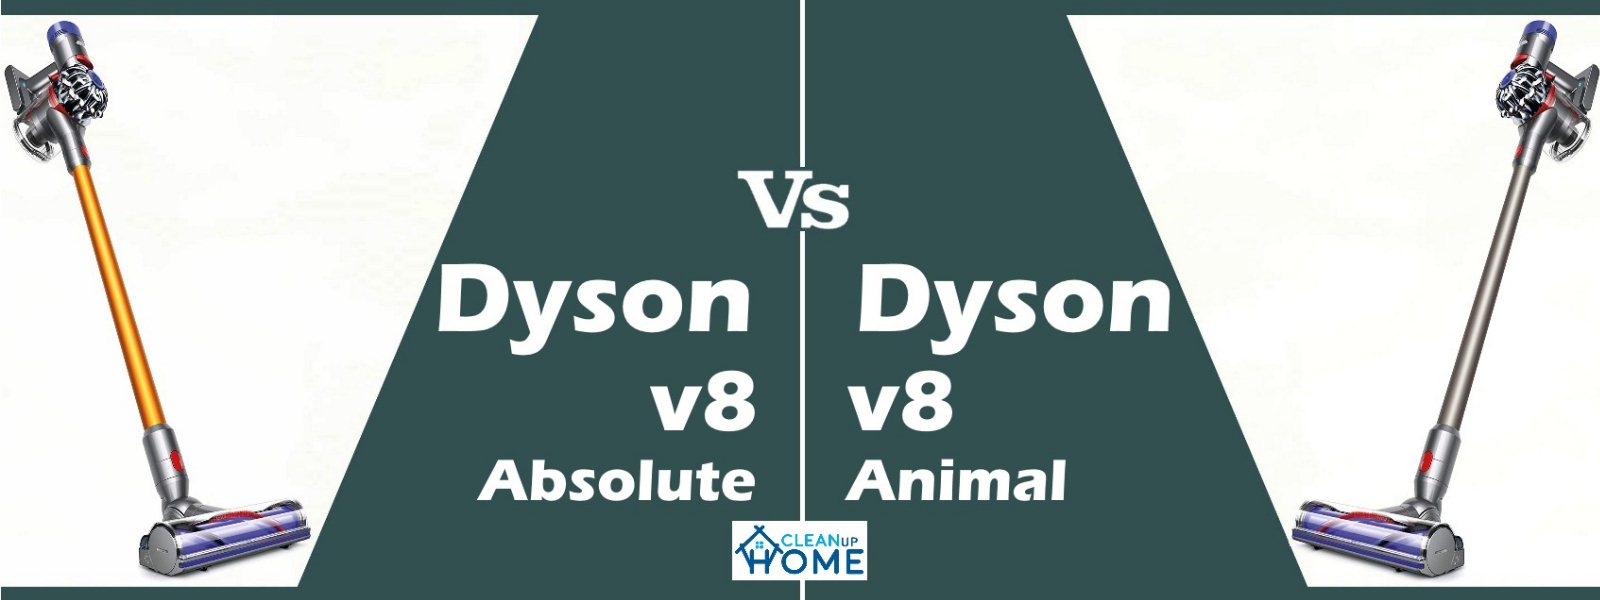 Dyson V8 Absolute Vs Animal Review To Know Which Is Better